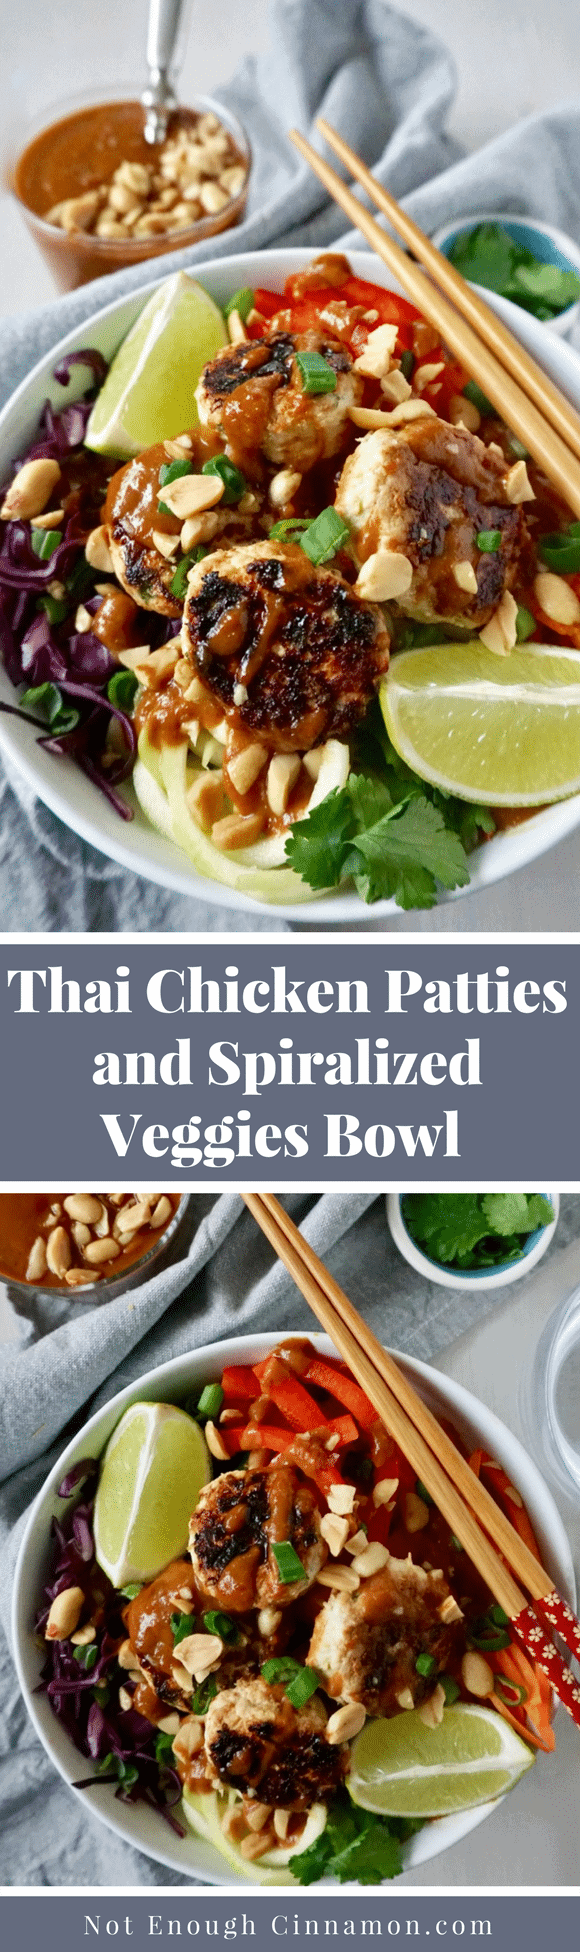 Thai Chicken Patties & Spiralized Veggies Bowl | A big bowl of goodness inspired by Thai cuisine made of moist mini Thai chicken patties, fresh, colorful veggies, and a delicious sweet and spicy peanut sauce.A healthy, gluten-free clean eating meal perfect for meal prepping! #mealprepping, #cleaneating, #Thaicuisine, #glutenfreerecipes, #chickenpatties